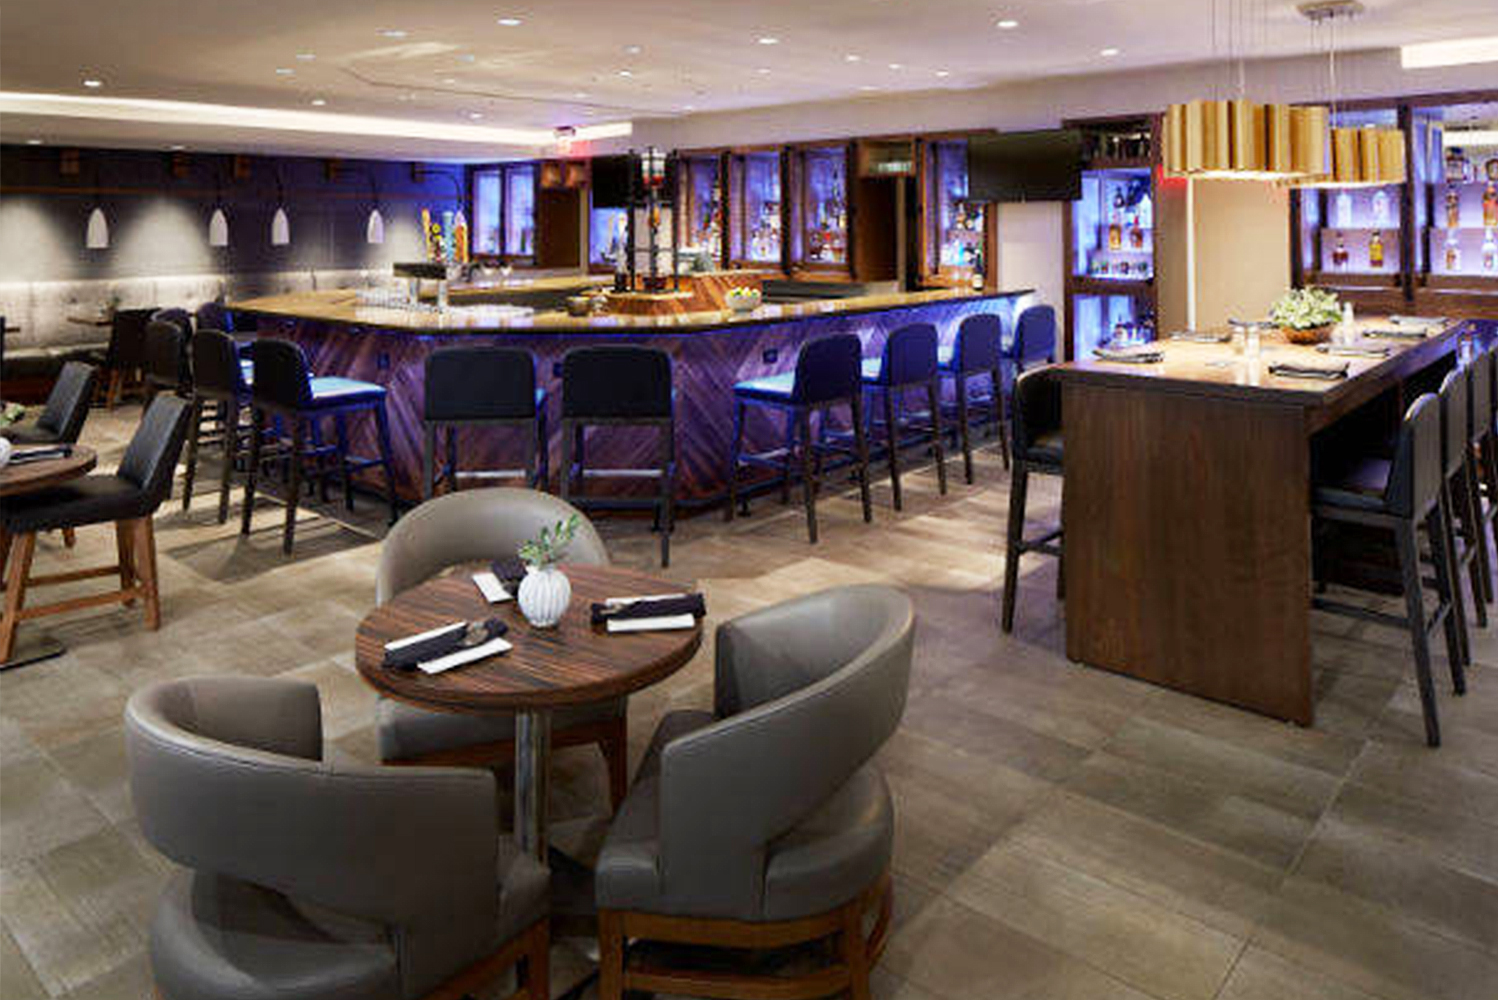 Marre & Allen Bar & Kitchen is the new restaurant in Birmingham Marriott.